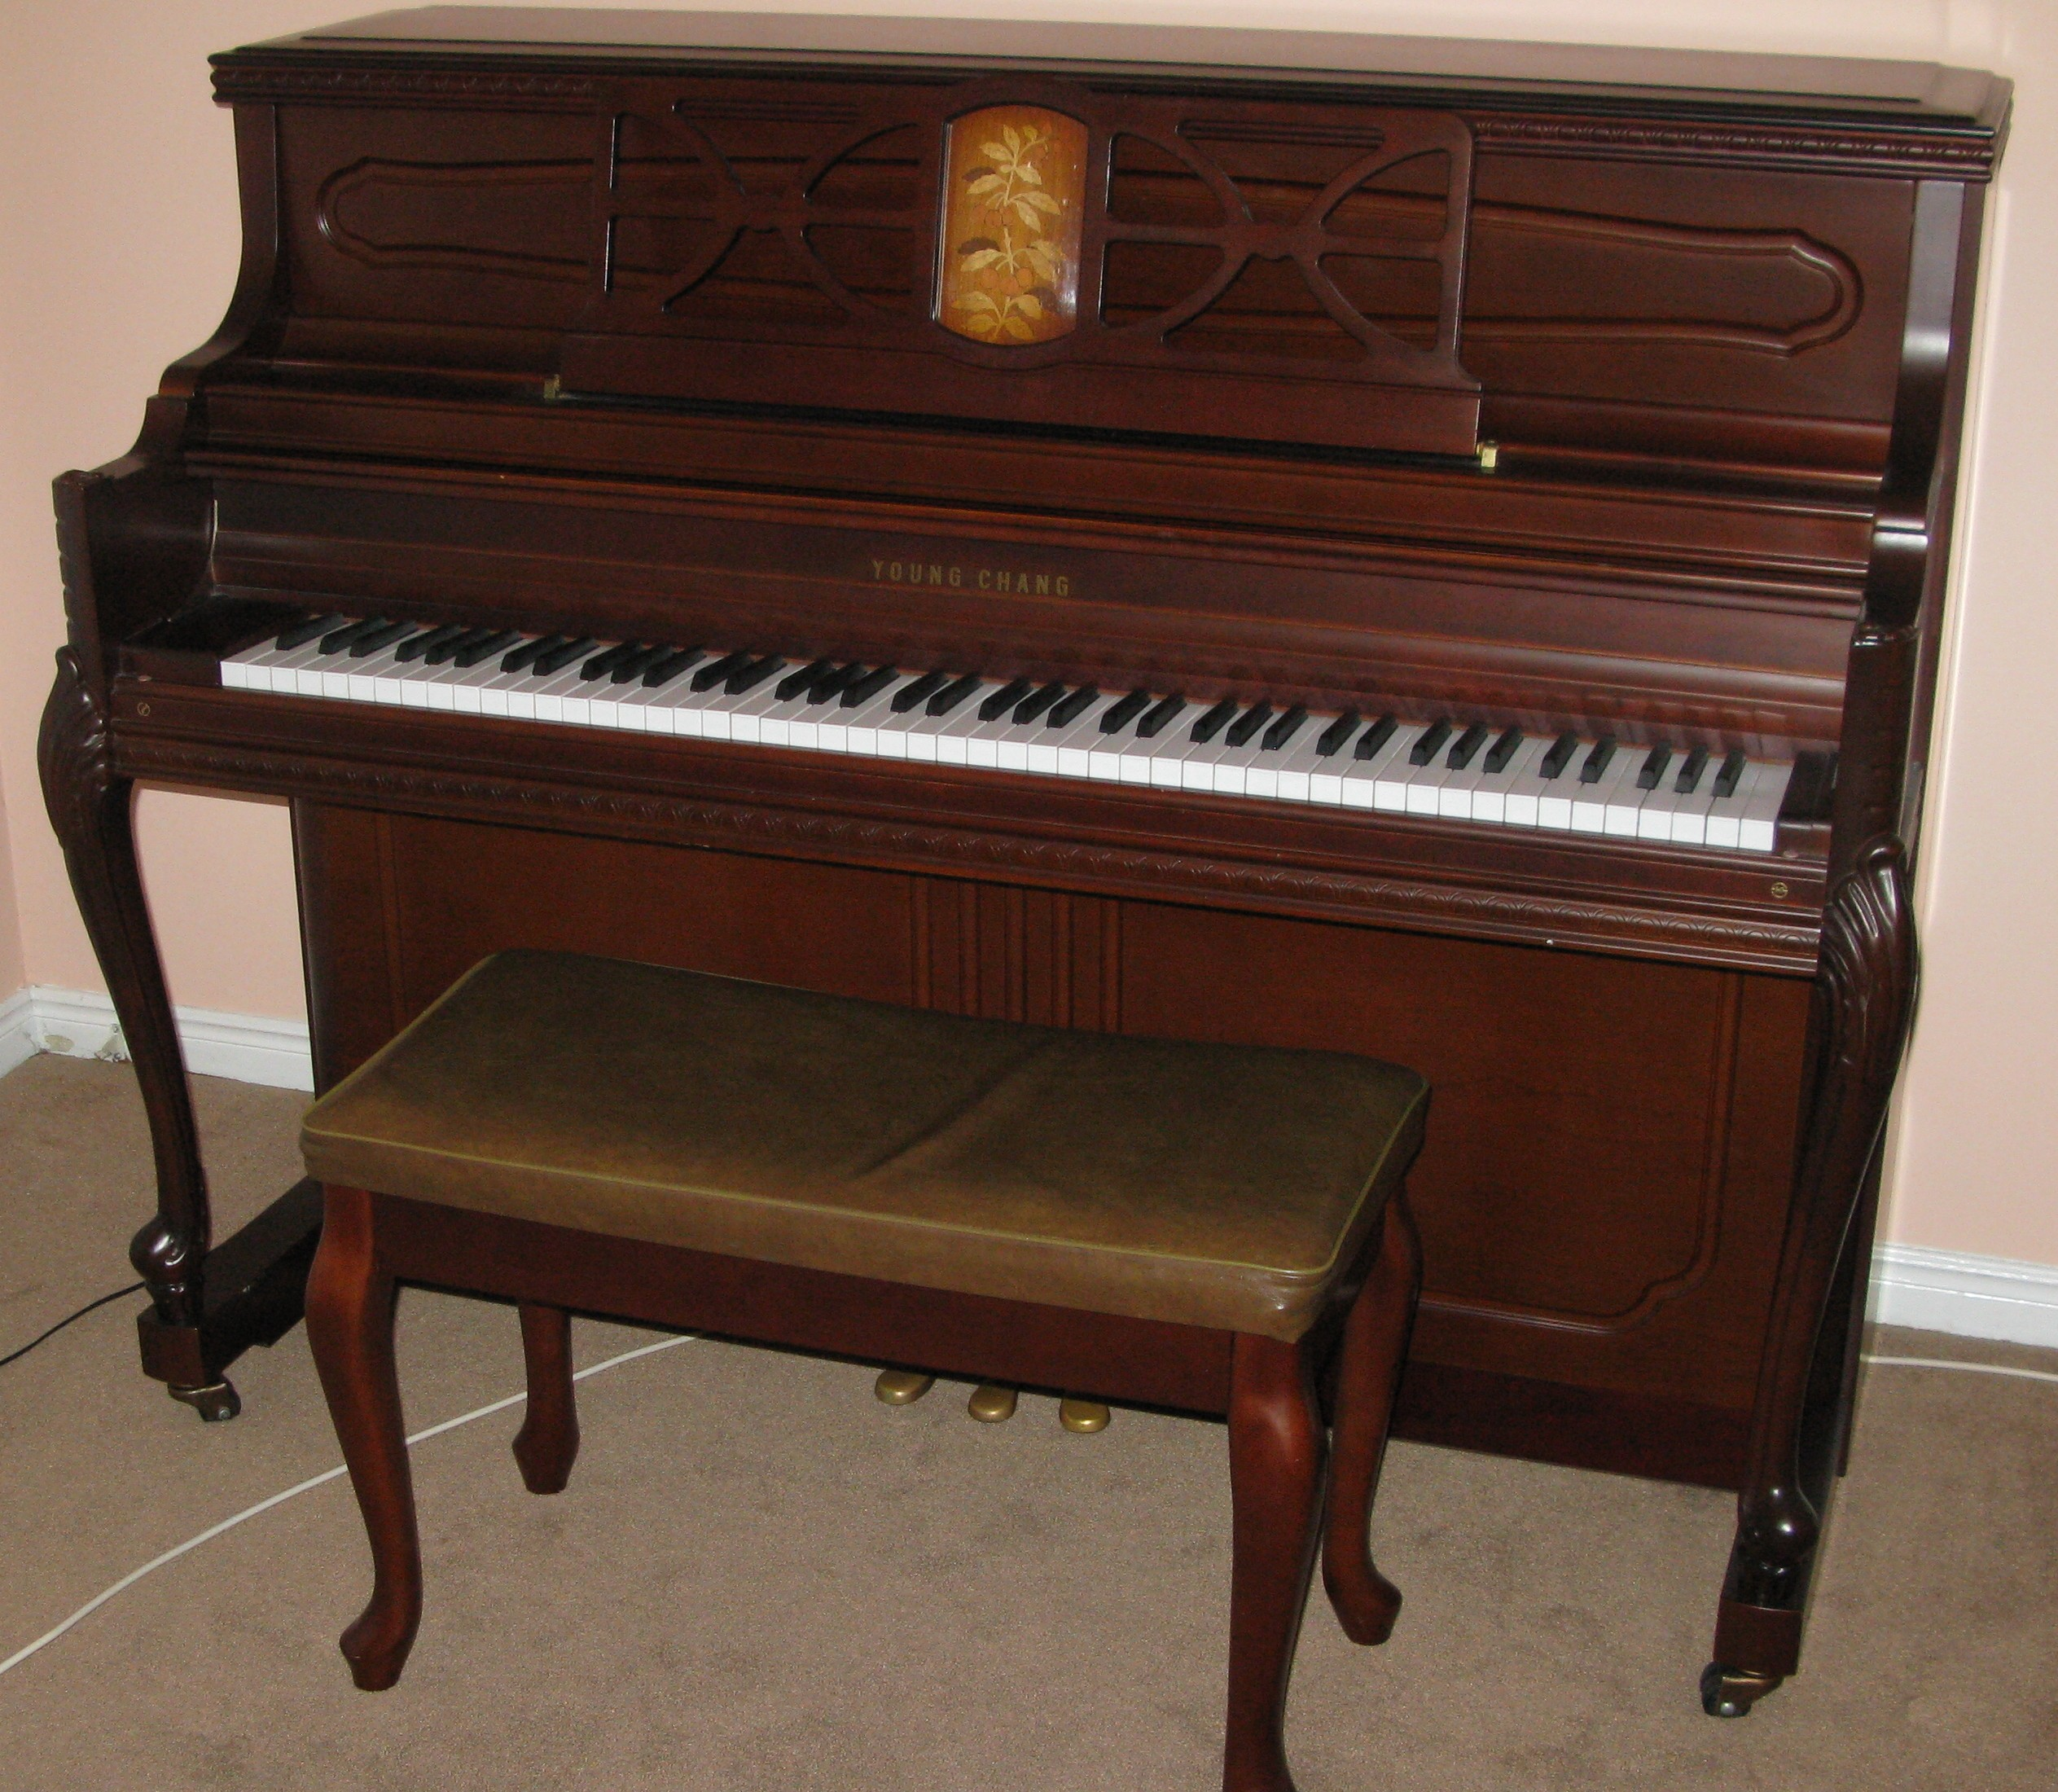 french provincial young chang uc118 upright piano for sale